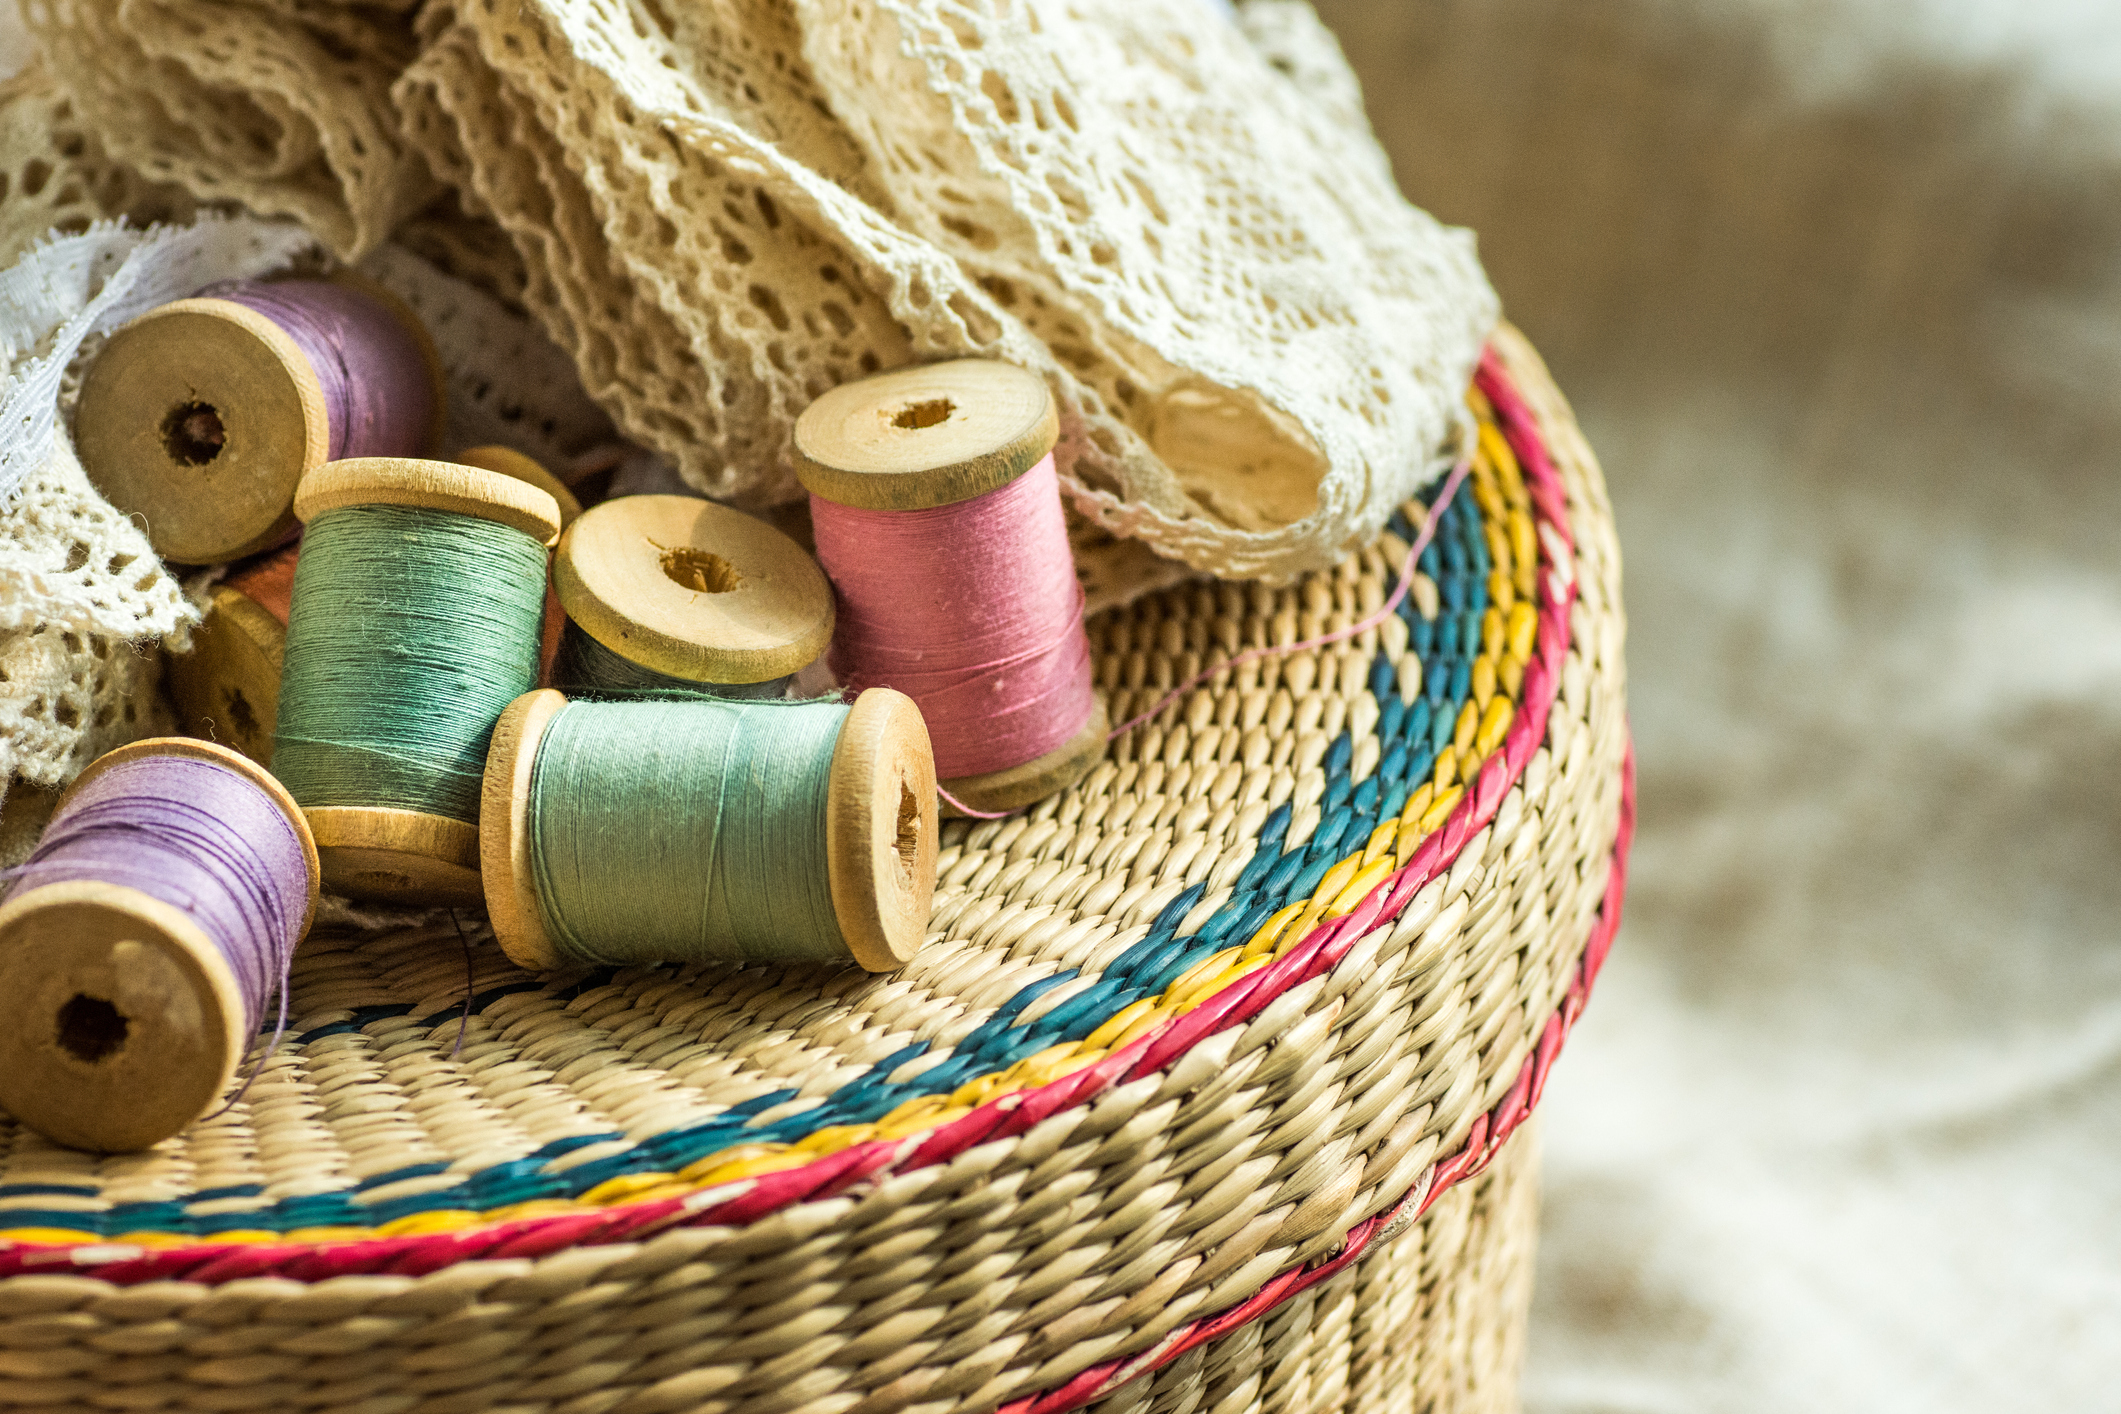 Woven rattan crafts and sewing supply box, wooden spools, rolls of lace, linen cloth background, hobby fashion concept